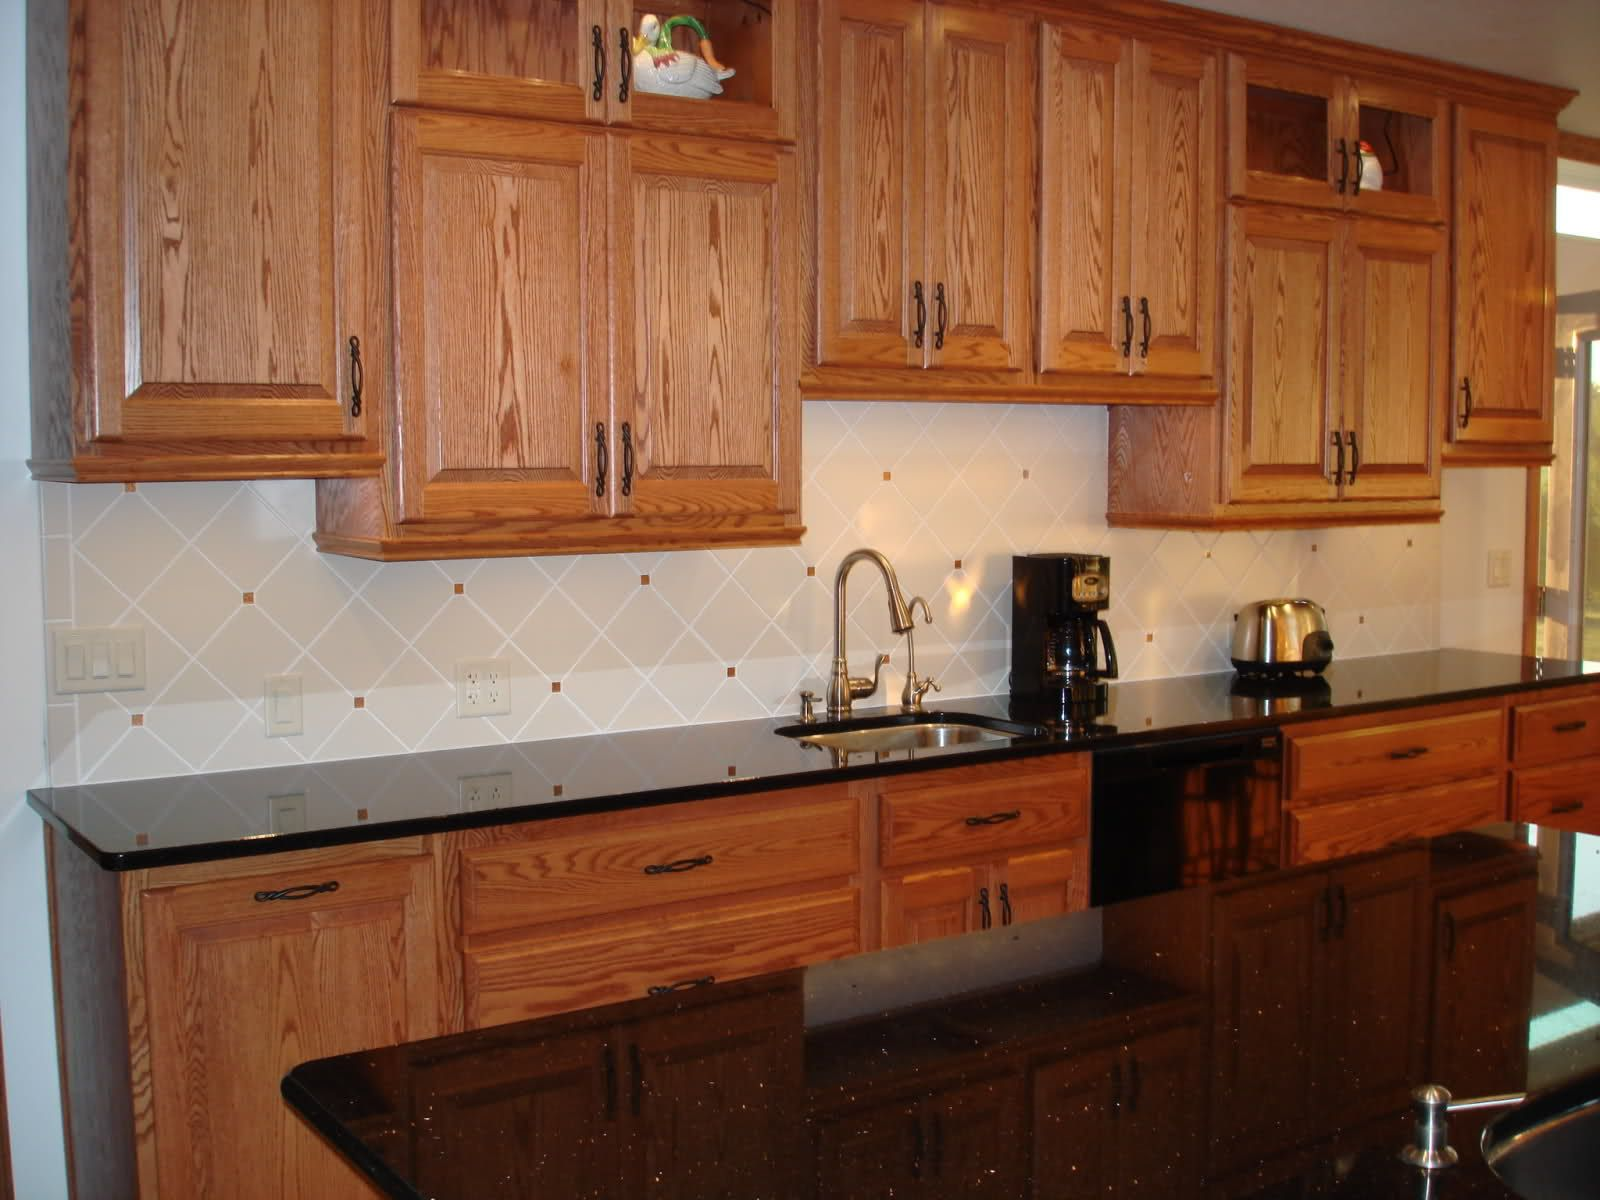 Oak Cabinets With Granite Countertops Pictures Backsplash Pictures With Oak Cabinets And Uba Tuba Granite